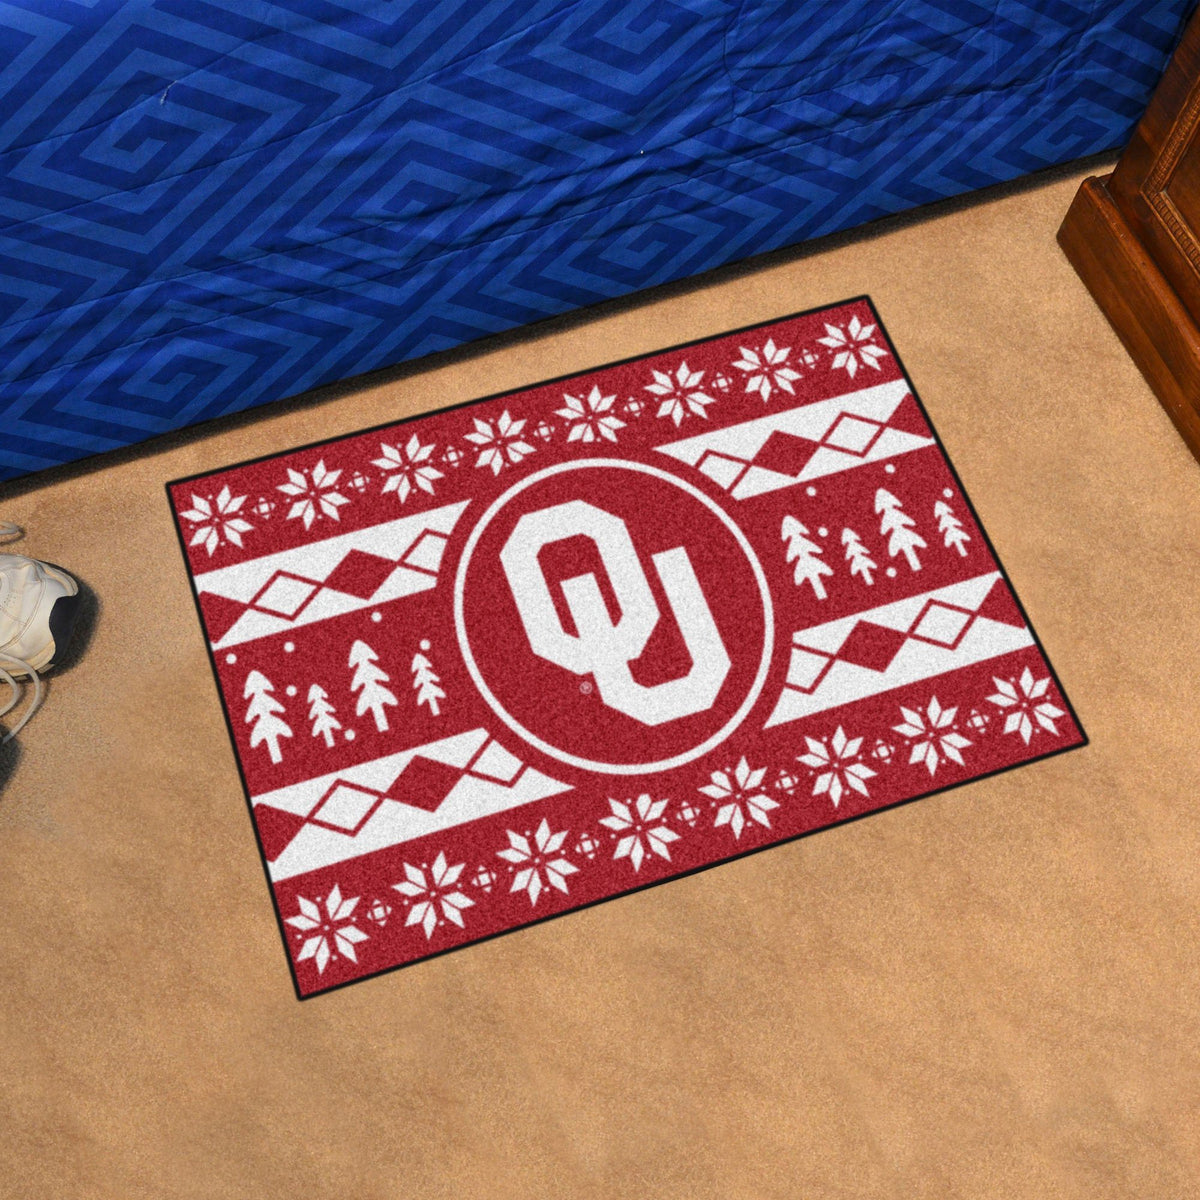 Collegiate - Holiday Sweater Starter Mat Collegiate Mats, Rectangular Mats, Holiday Sweater Starter Mat, Collegiate, Home Fan Mats Oklahoma